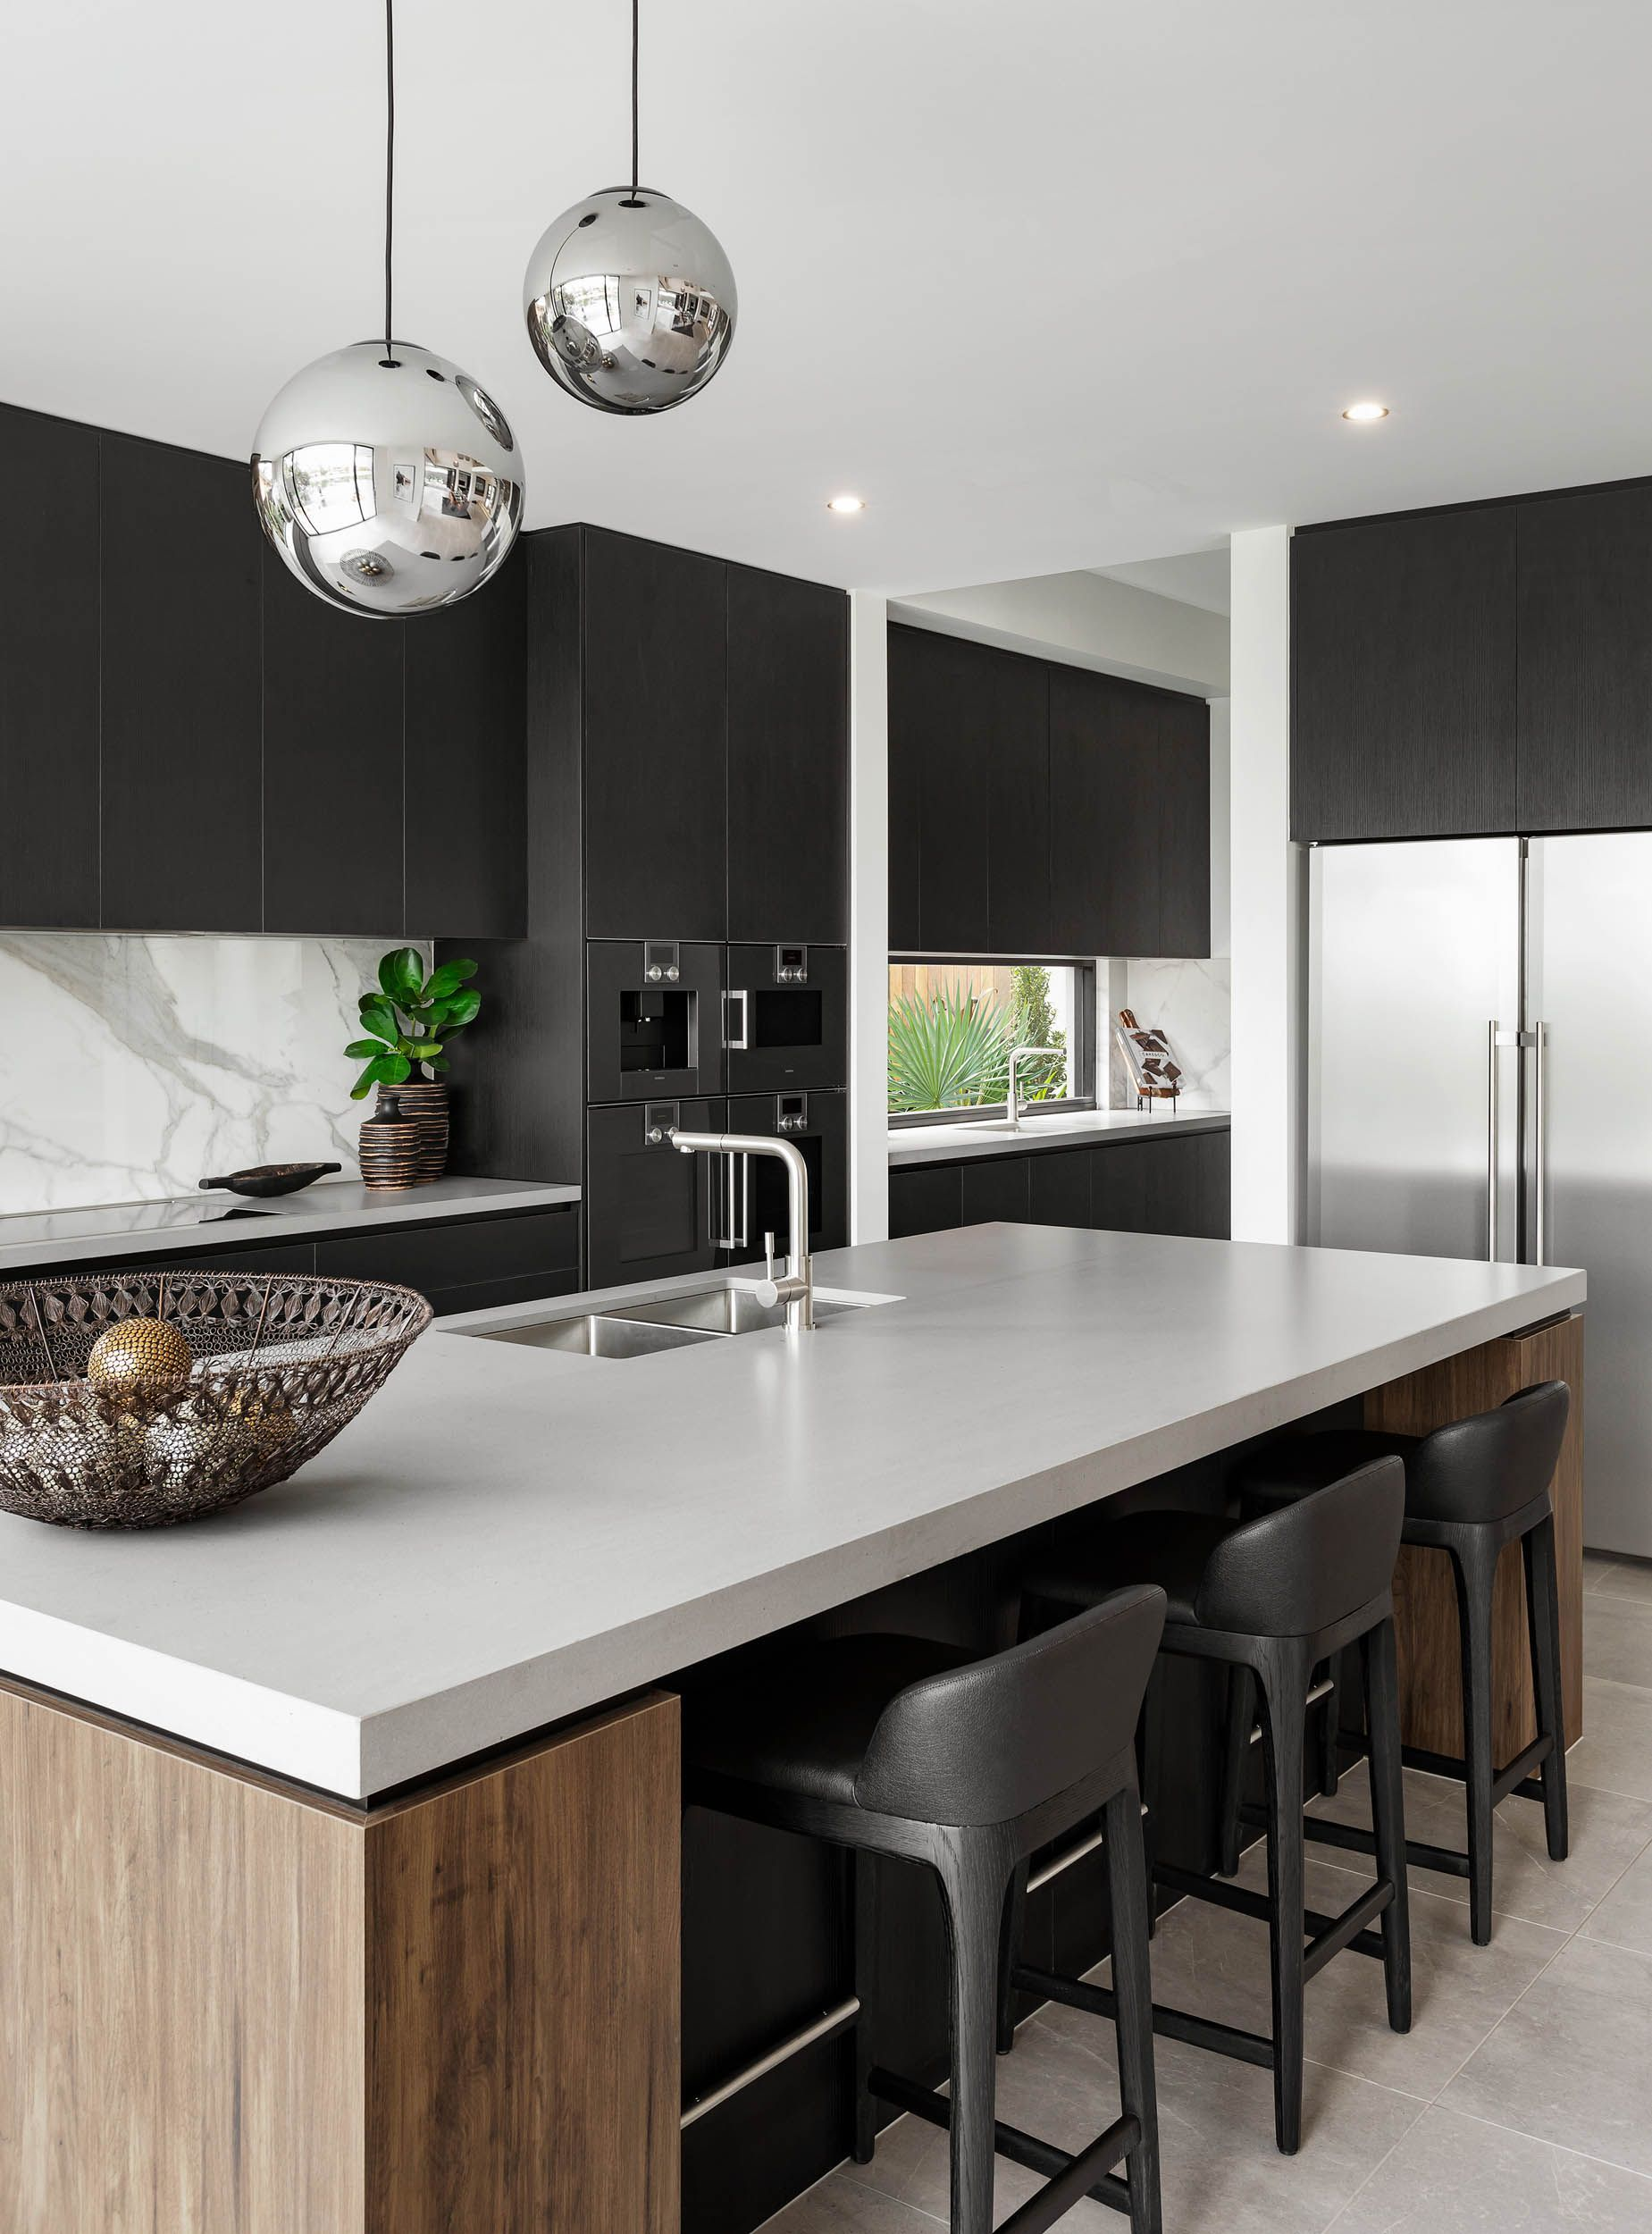 Kitchen The Signature By Metricon Riviera On Display In Sorrento Qld Avec Images Cuisine Moderne Cuisine Contemporaine Cuisine Design Moderne